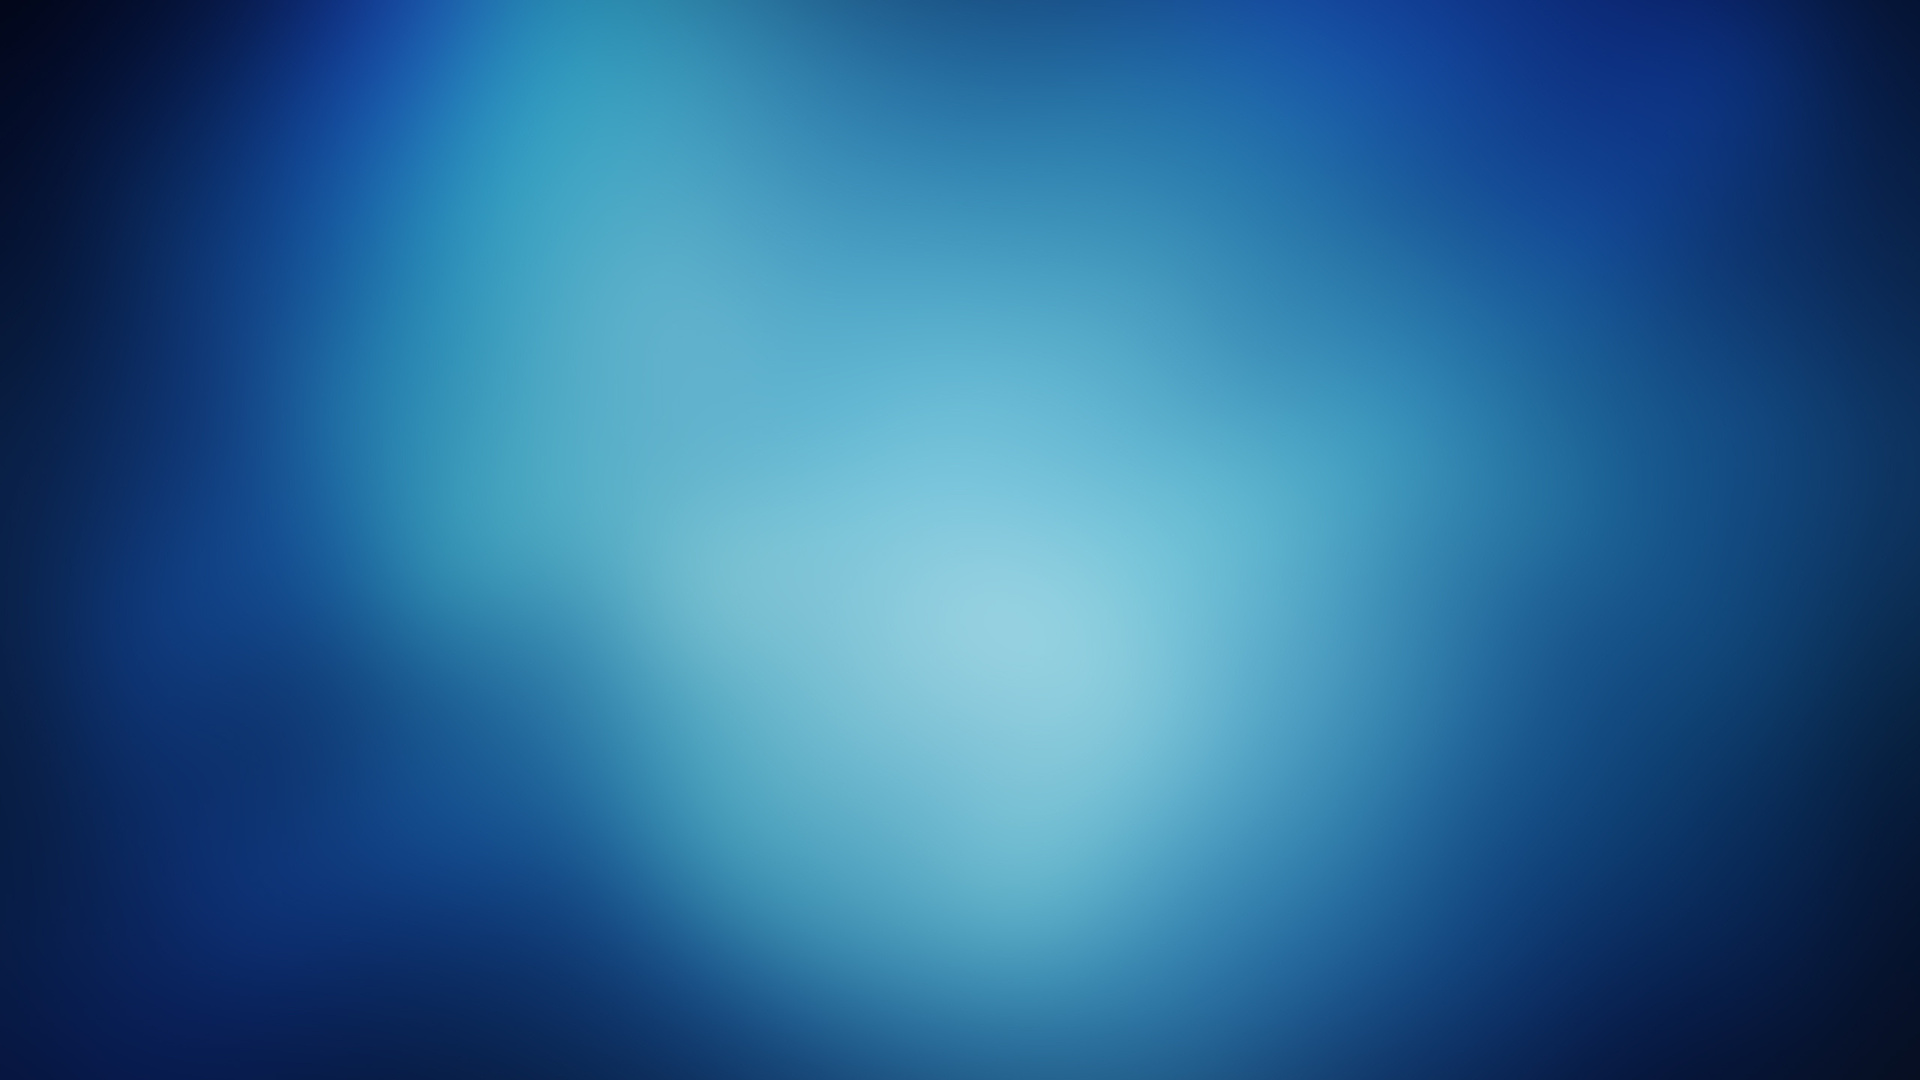 Blue Glow Background wallpaper